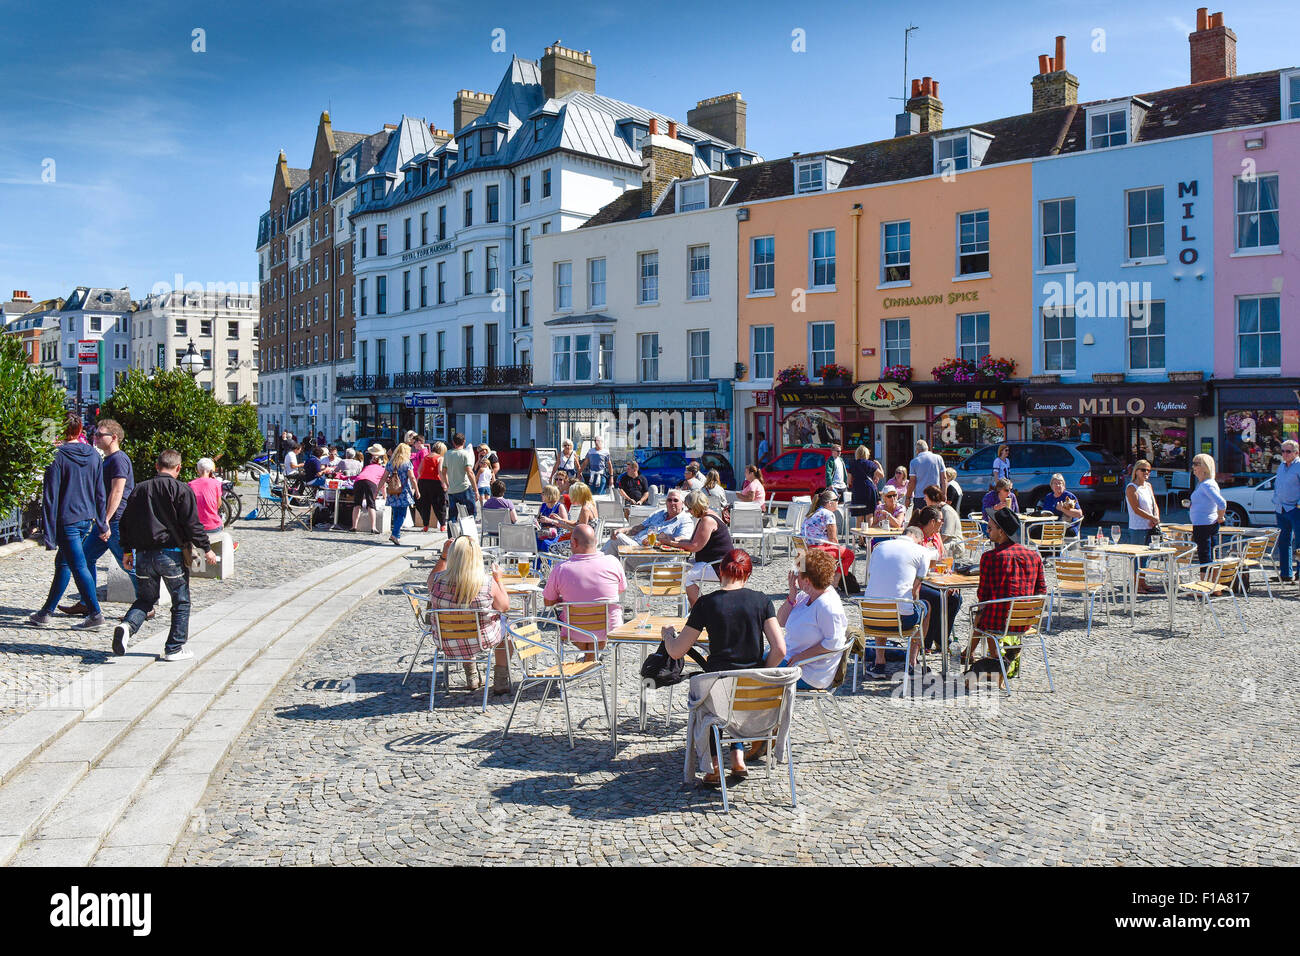 People enjoying the Summer sunshine as they relax in Margate, Kent. - Stock Image